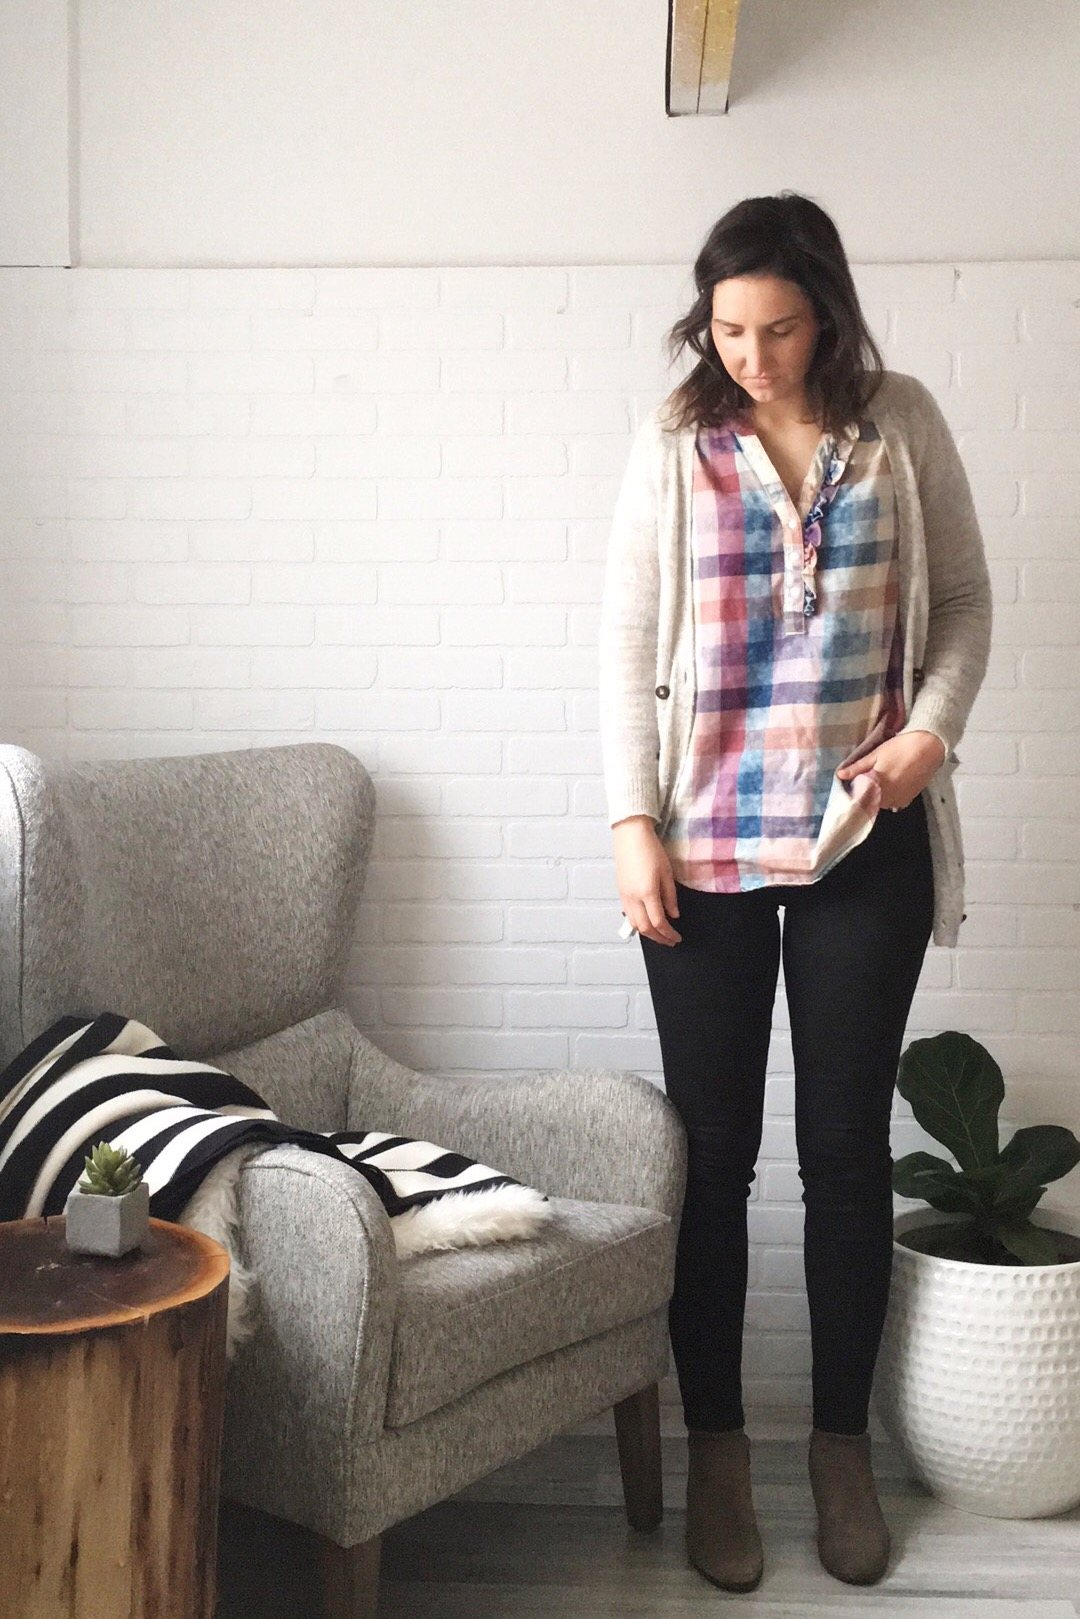 cardigan: Madewell /shirt: Anthropologie / jeans:  Level 99  / shoes: DSW